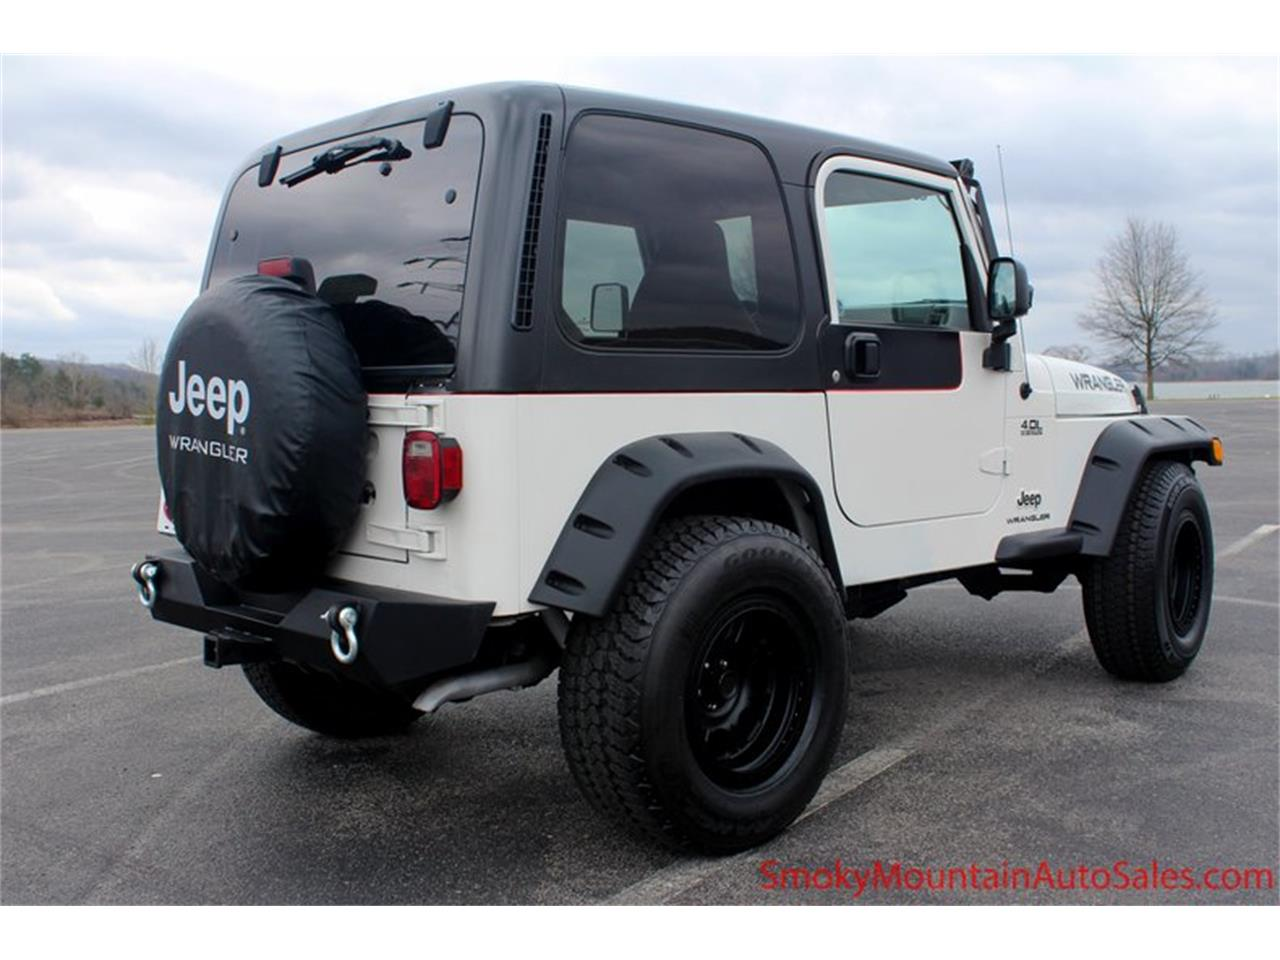 Large Picture of 2003 Jeep Wrangler located in Lenoir City Tennessee - $12,995.00 - P95Y